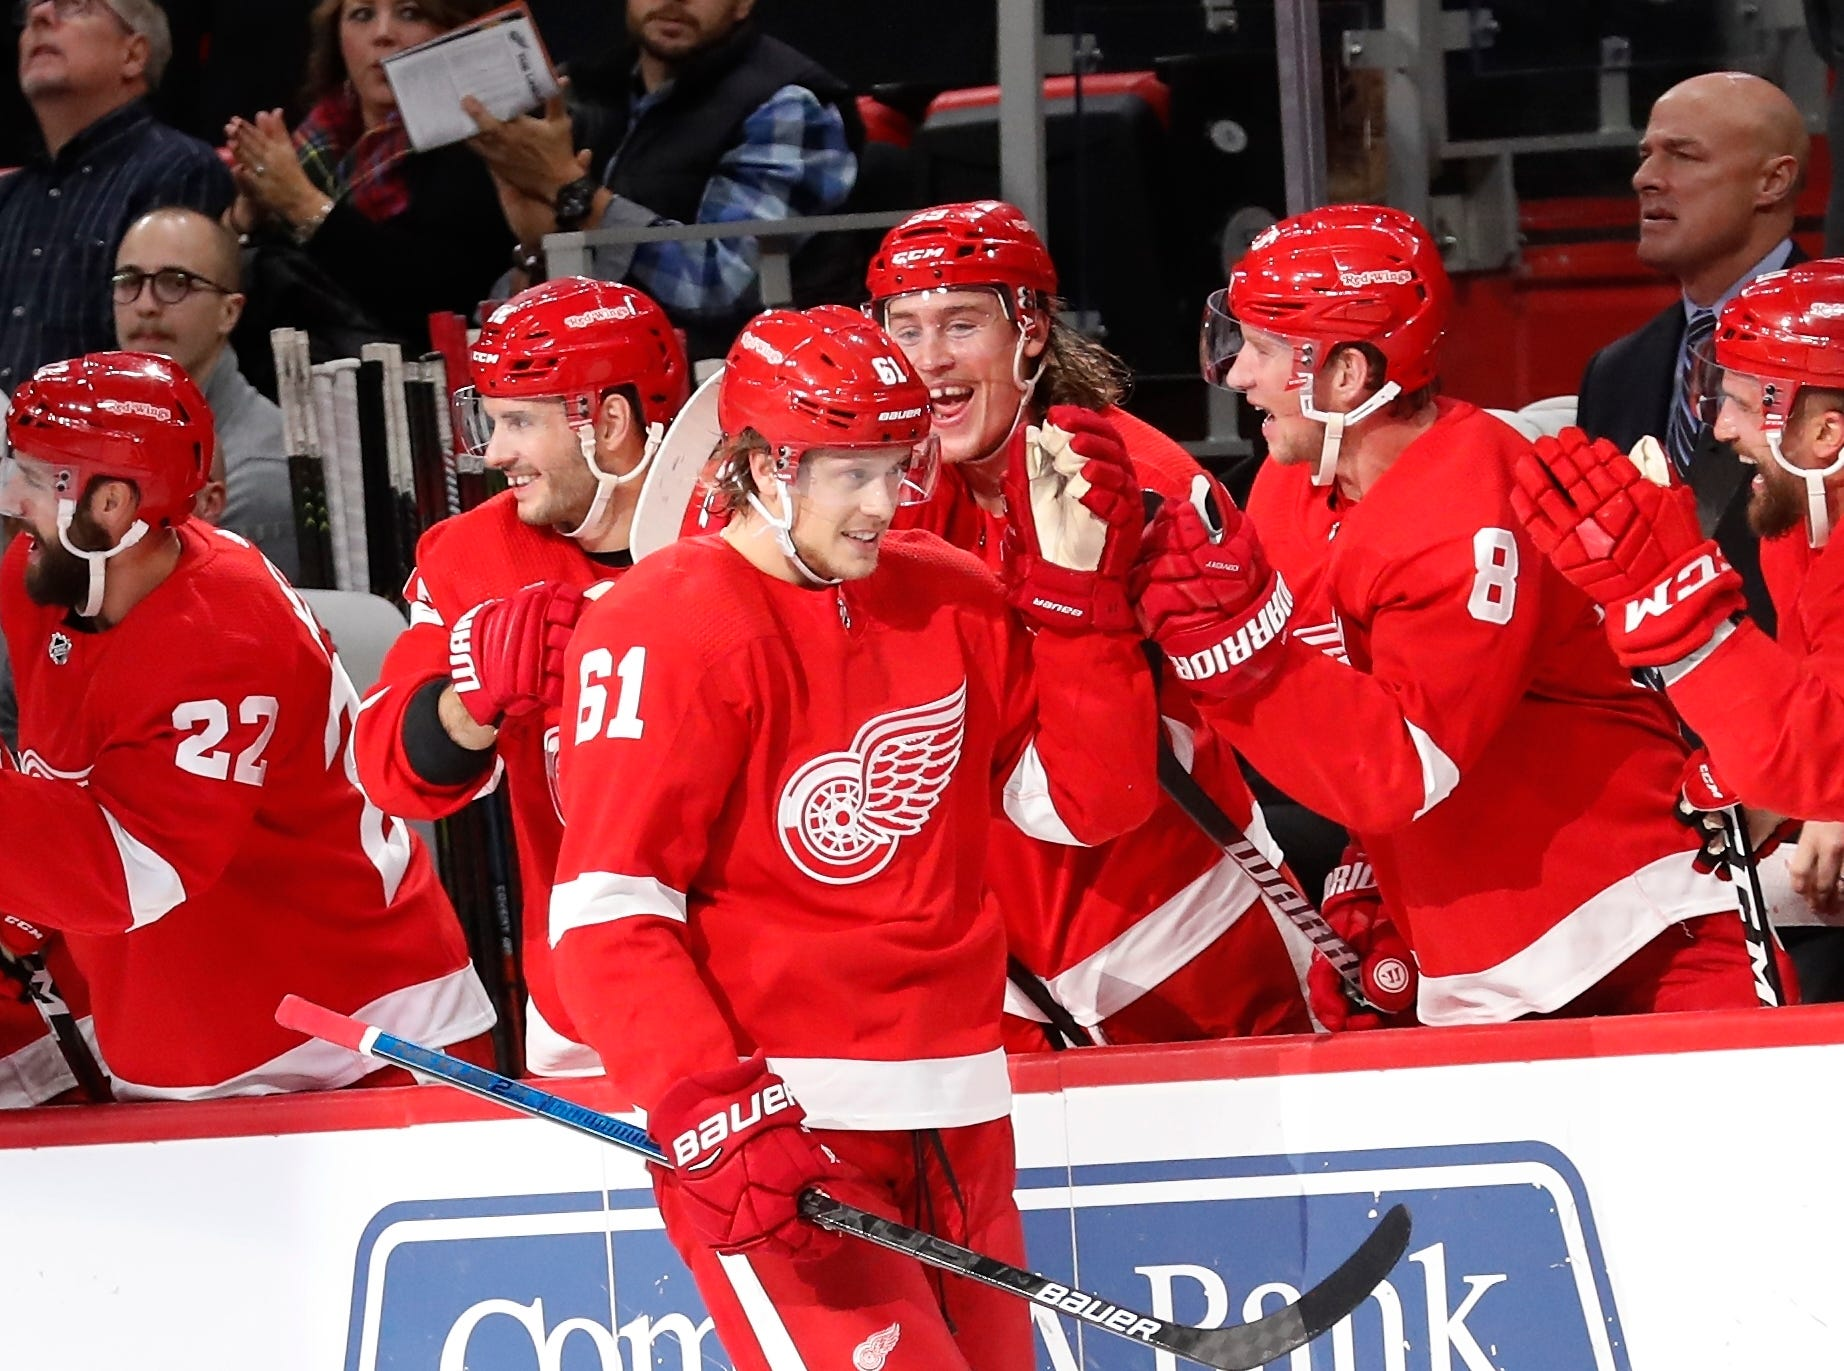 Detroit Red Wings left wing Jacob de la Rose (61) is congratulated after his first goal of the season during the first period of an NHL hockey game against the Edmonton Oilers, Saturday, Nov. 3, 2018, in Detroit. (AP Photo/Carlos Osorio)